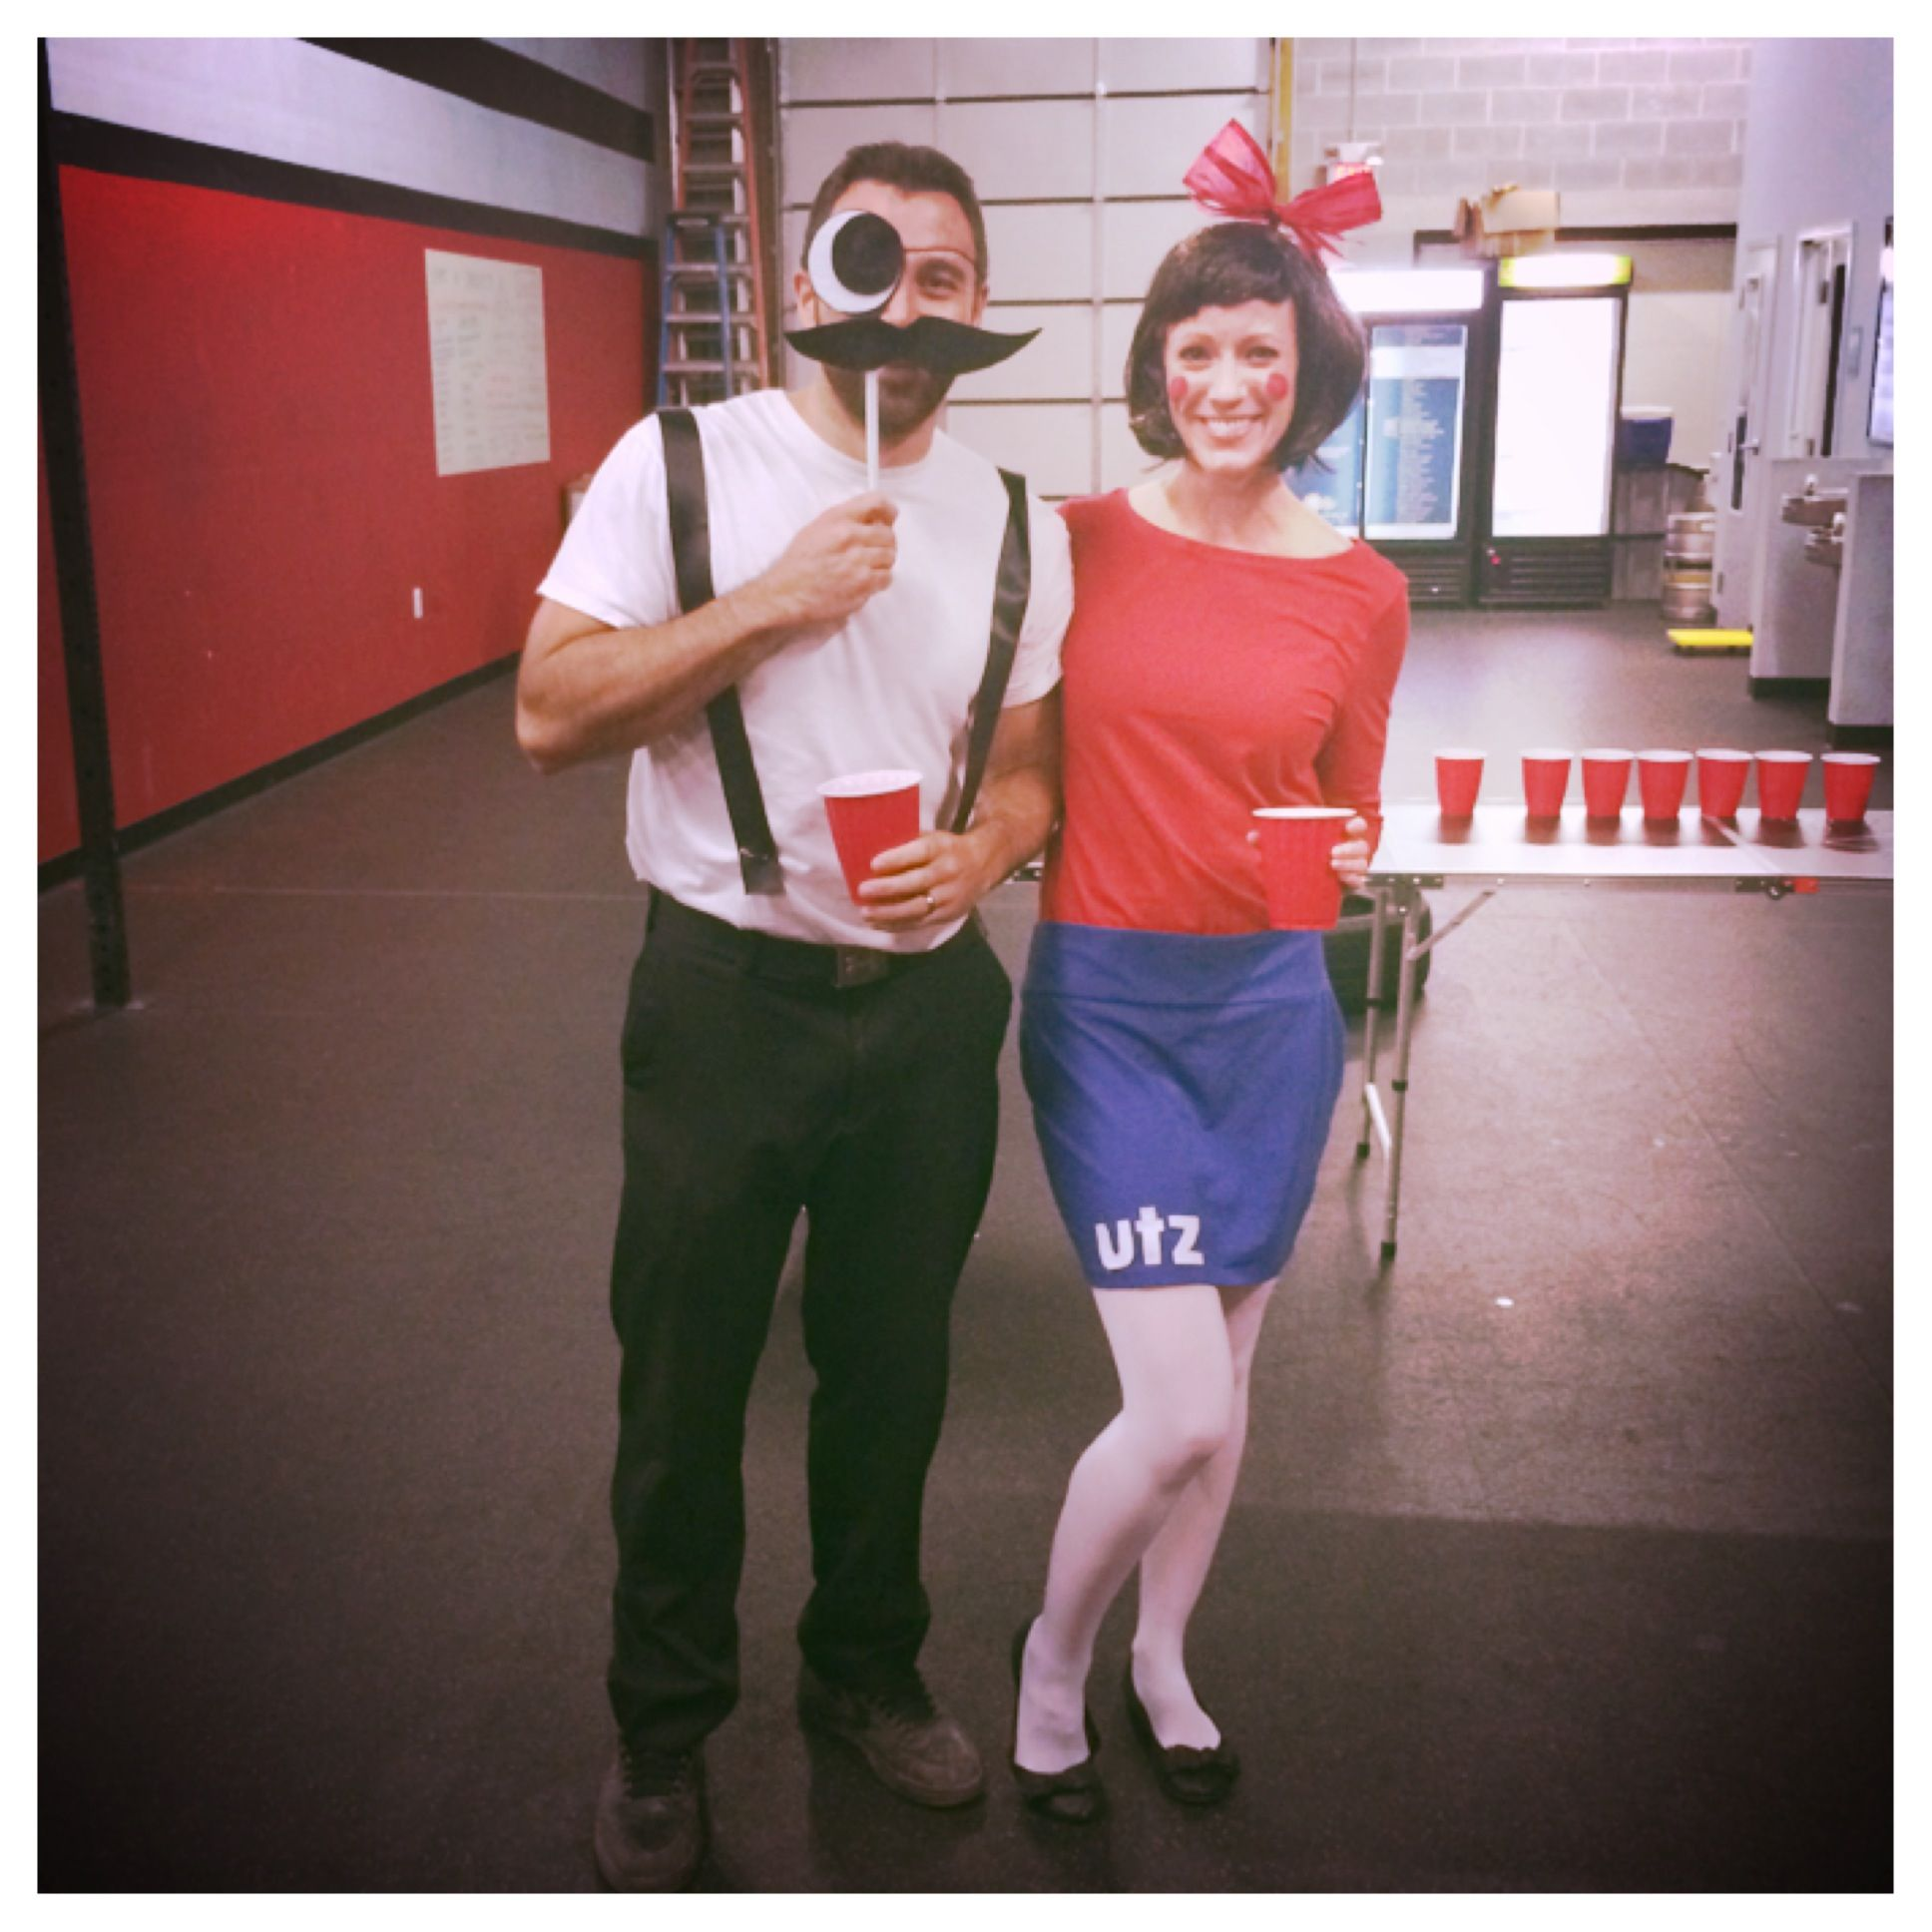 Natty boh and Utz girl Halloween costume #baltimore | Clothes ...